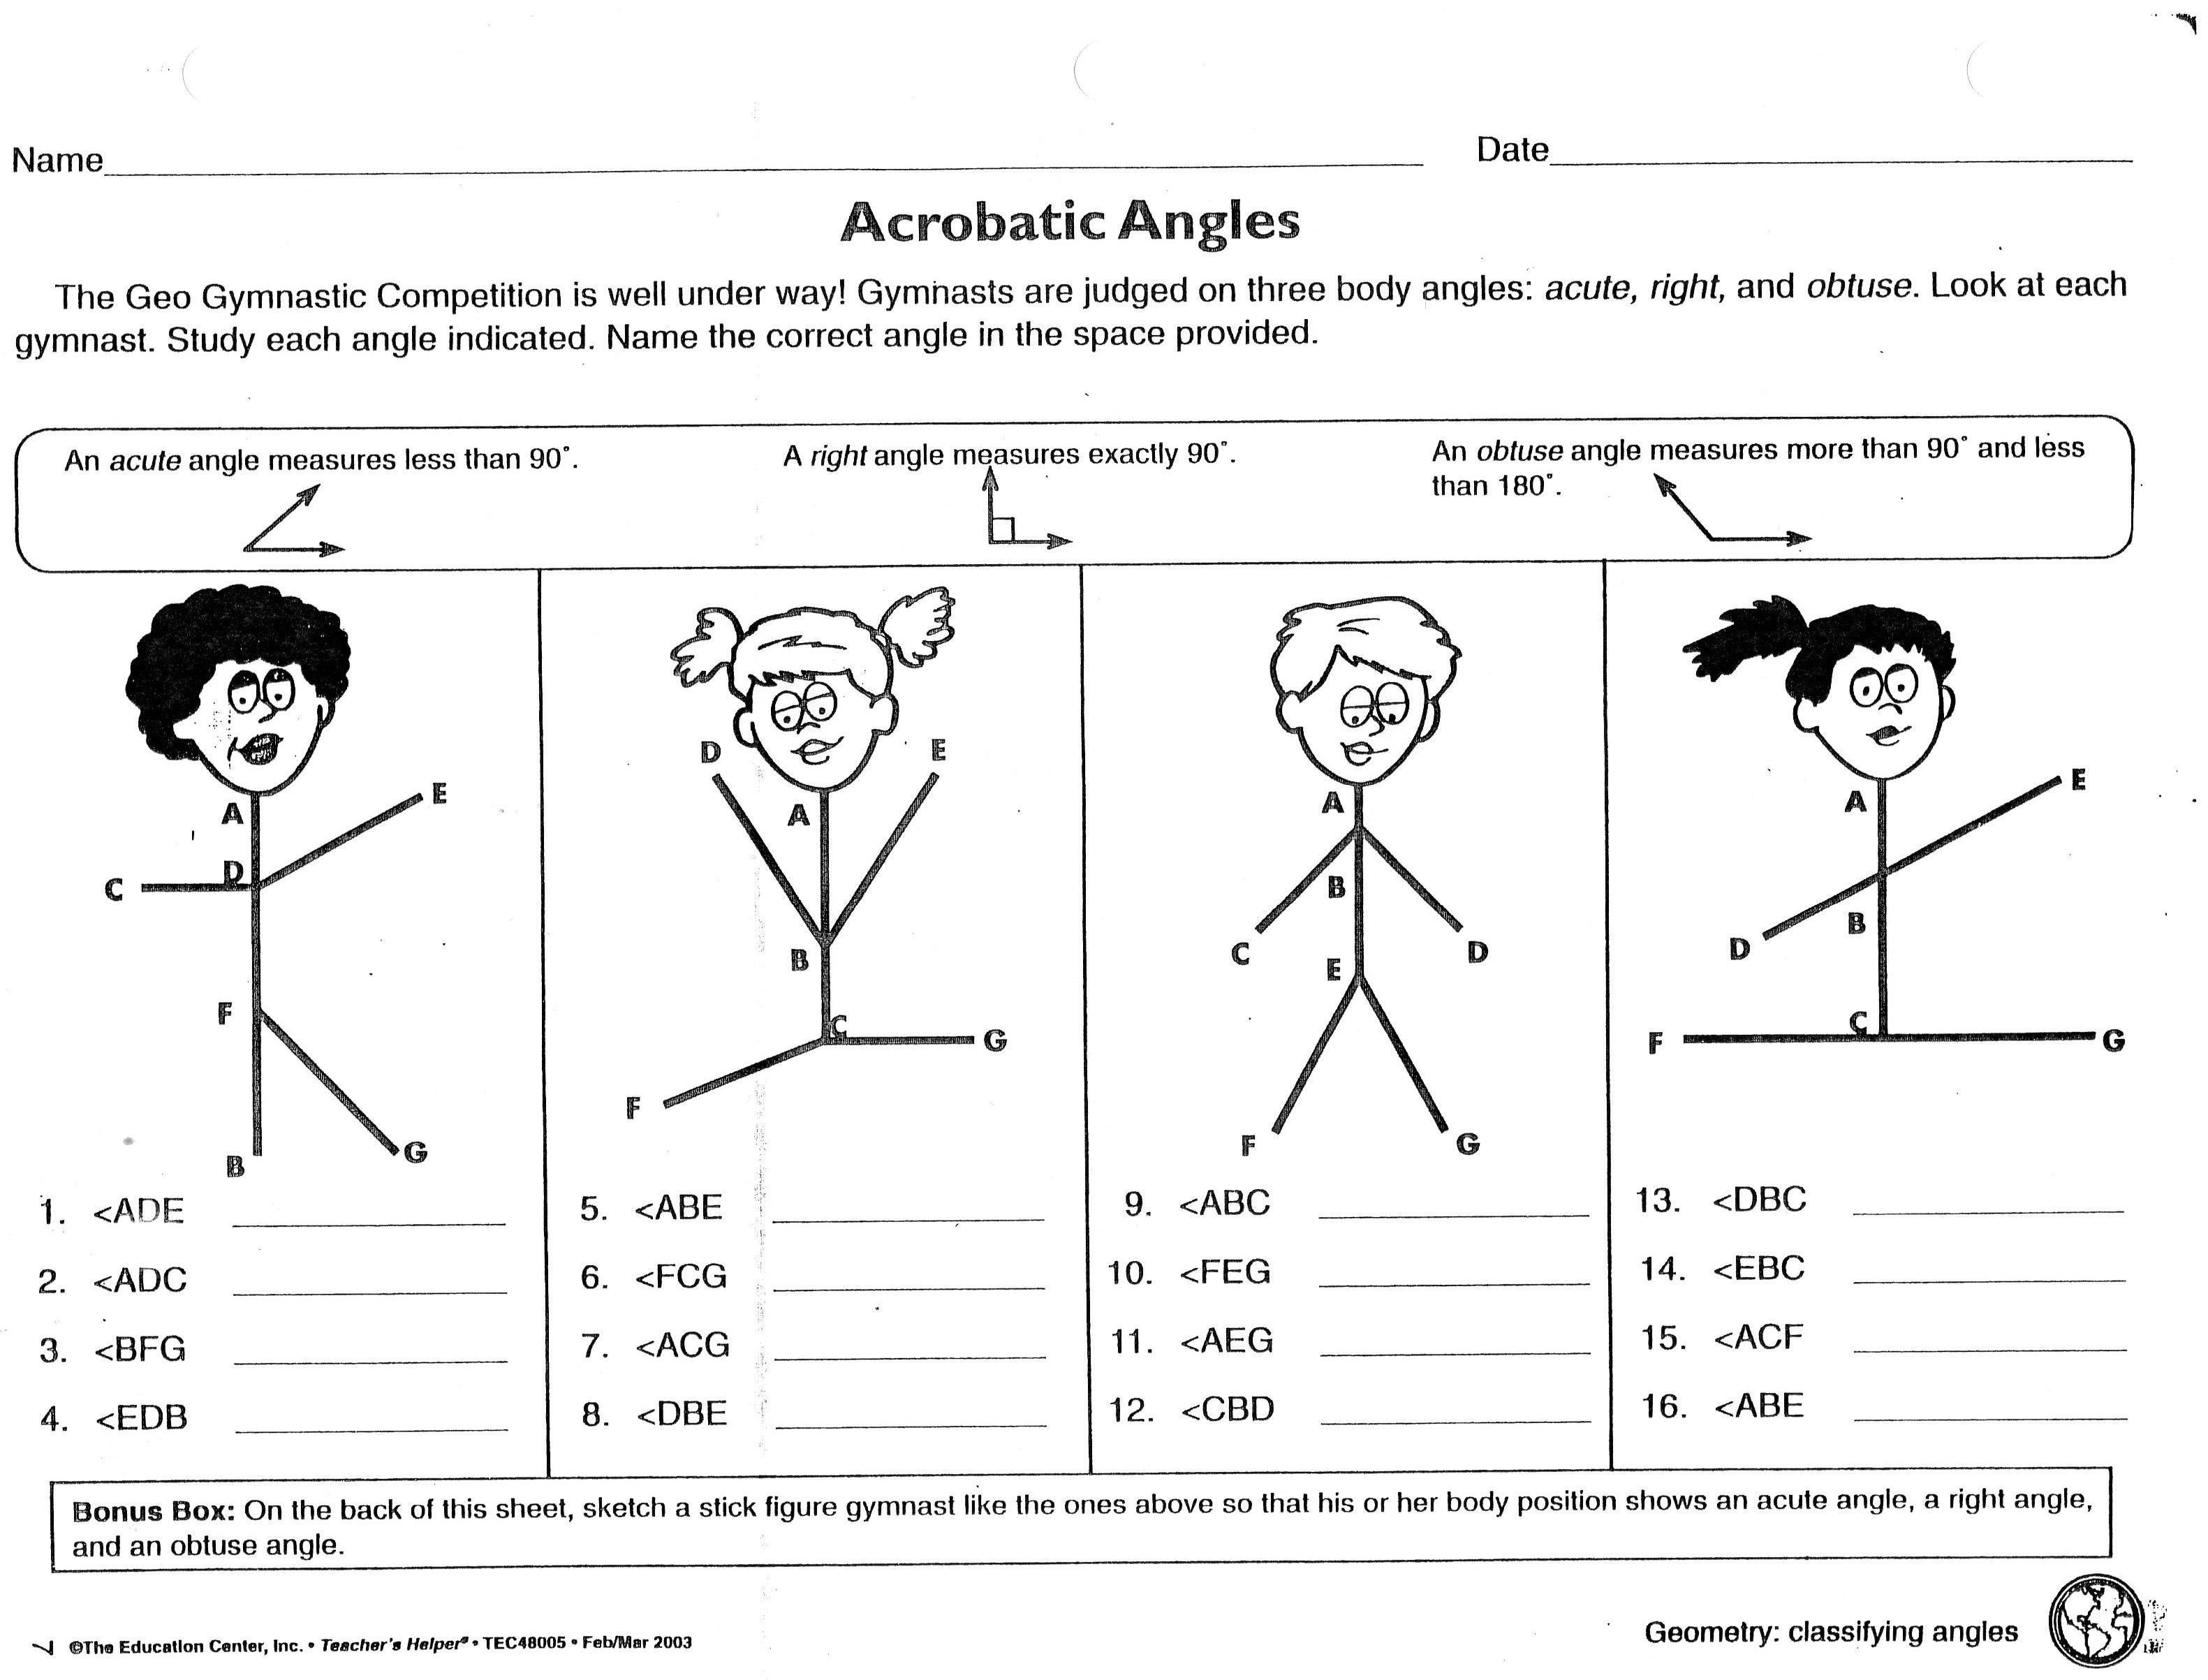 Worksheets Identifying Angles Worksheet phase iii acrobatic angles worksheet jpg